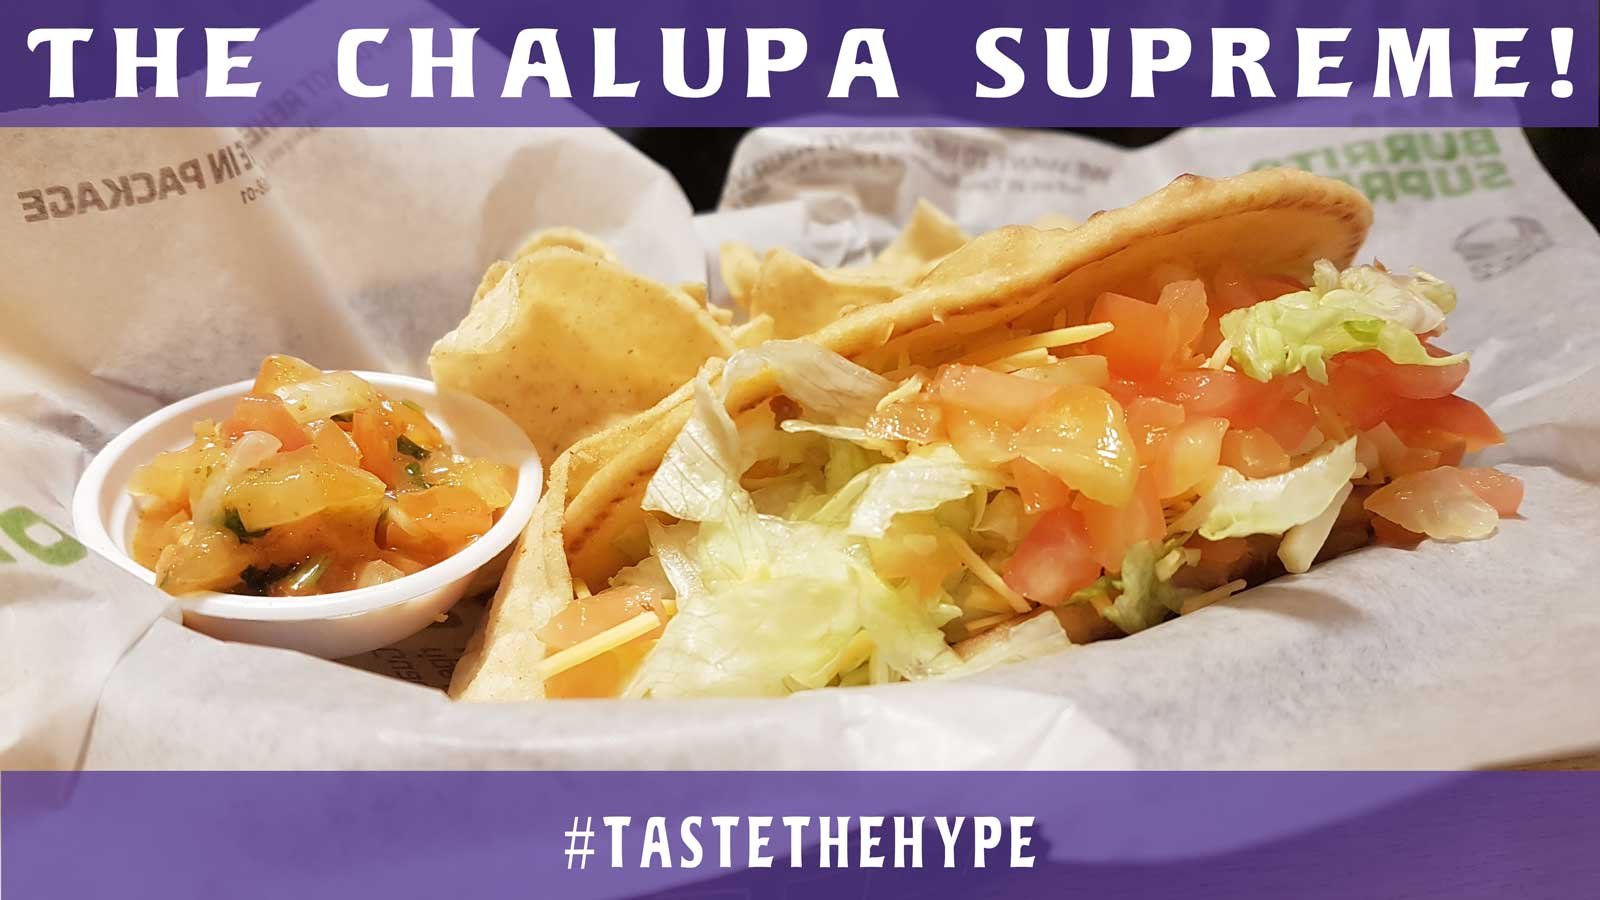 Taste the hype with Taco Bell's Chalupa Supreme